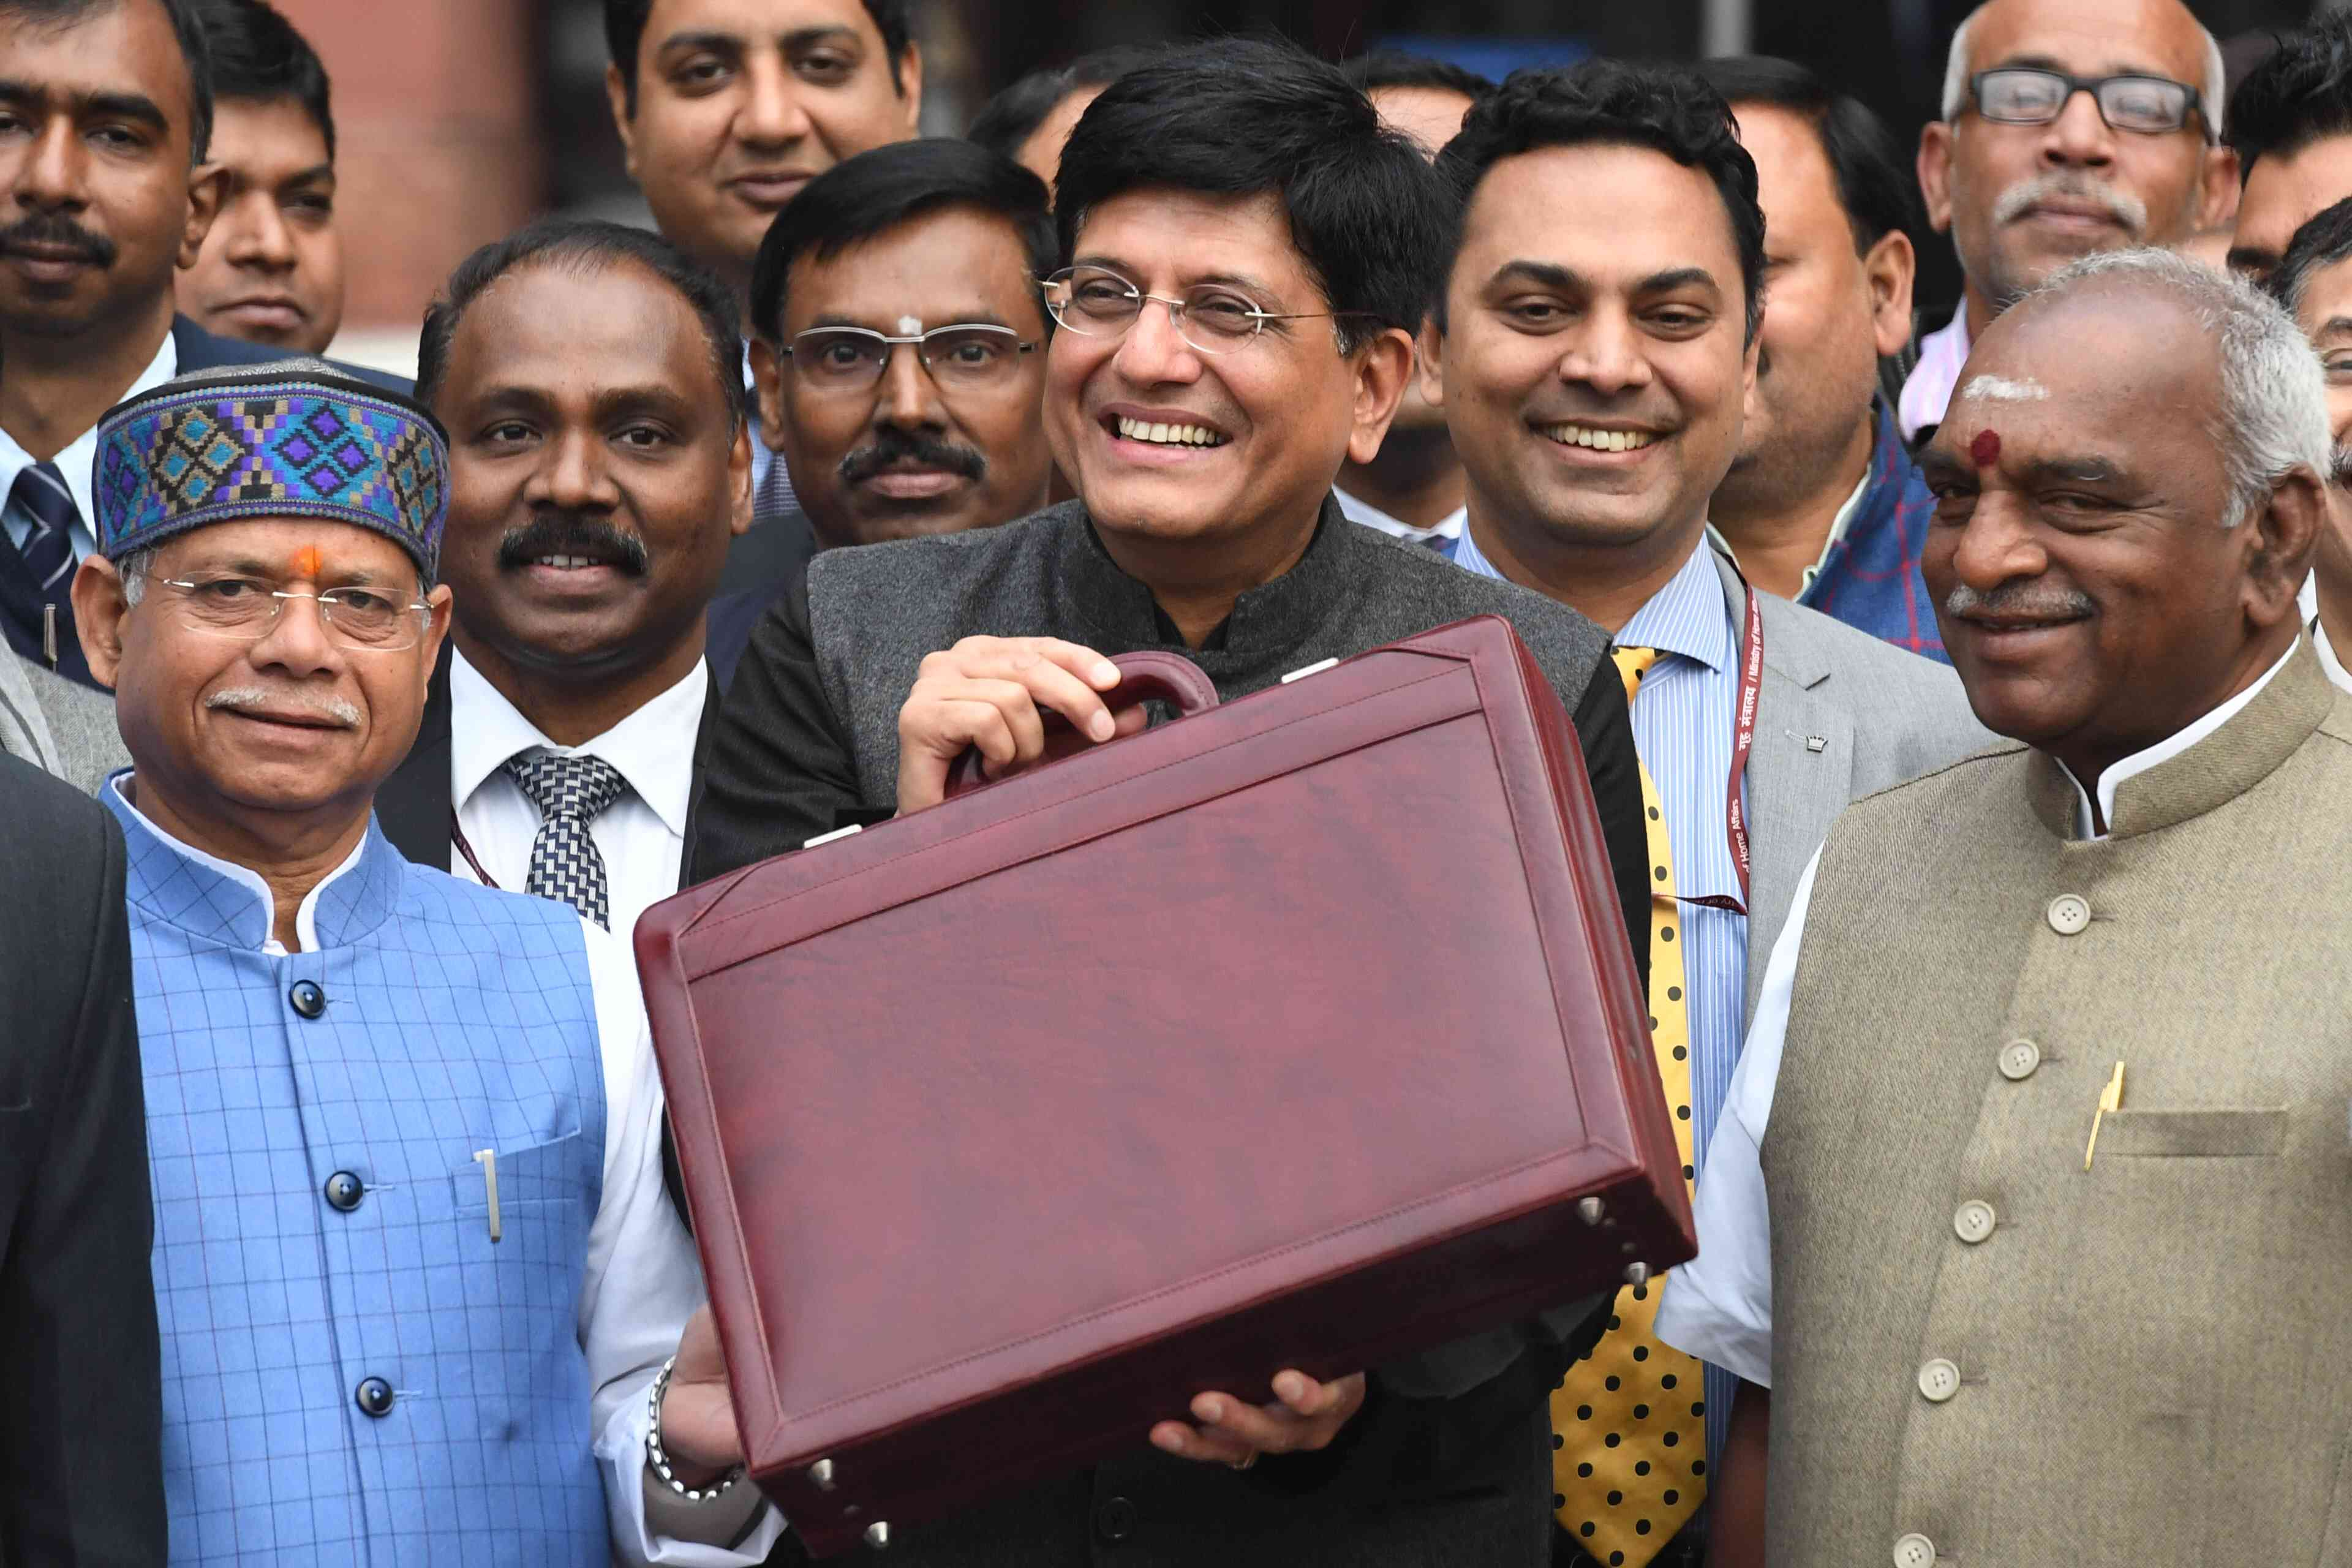 Finance Minister Piyush Goyal with the briefcase containing the Budget documents ahead of the presentation at 11 am on Friday. (Credit: Prakash Singh/AFP)